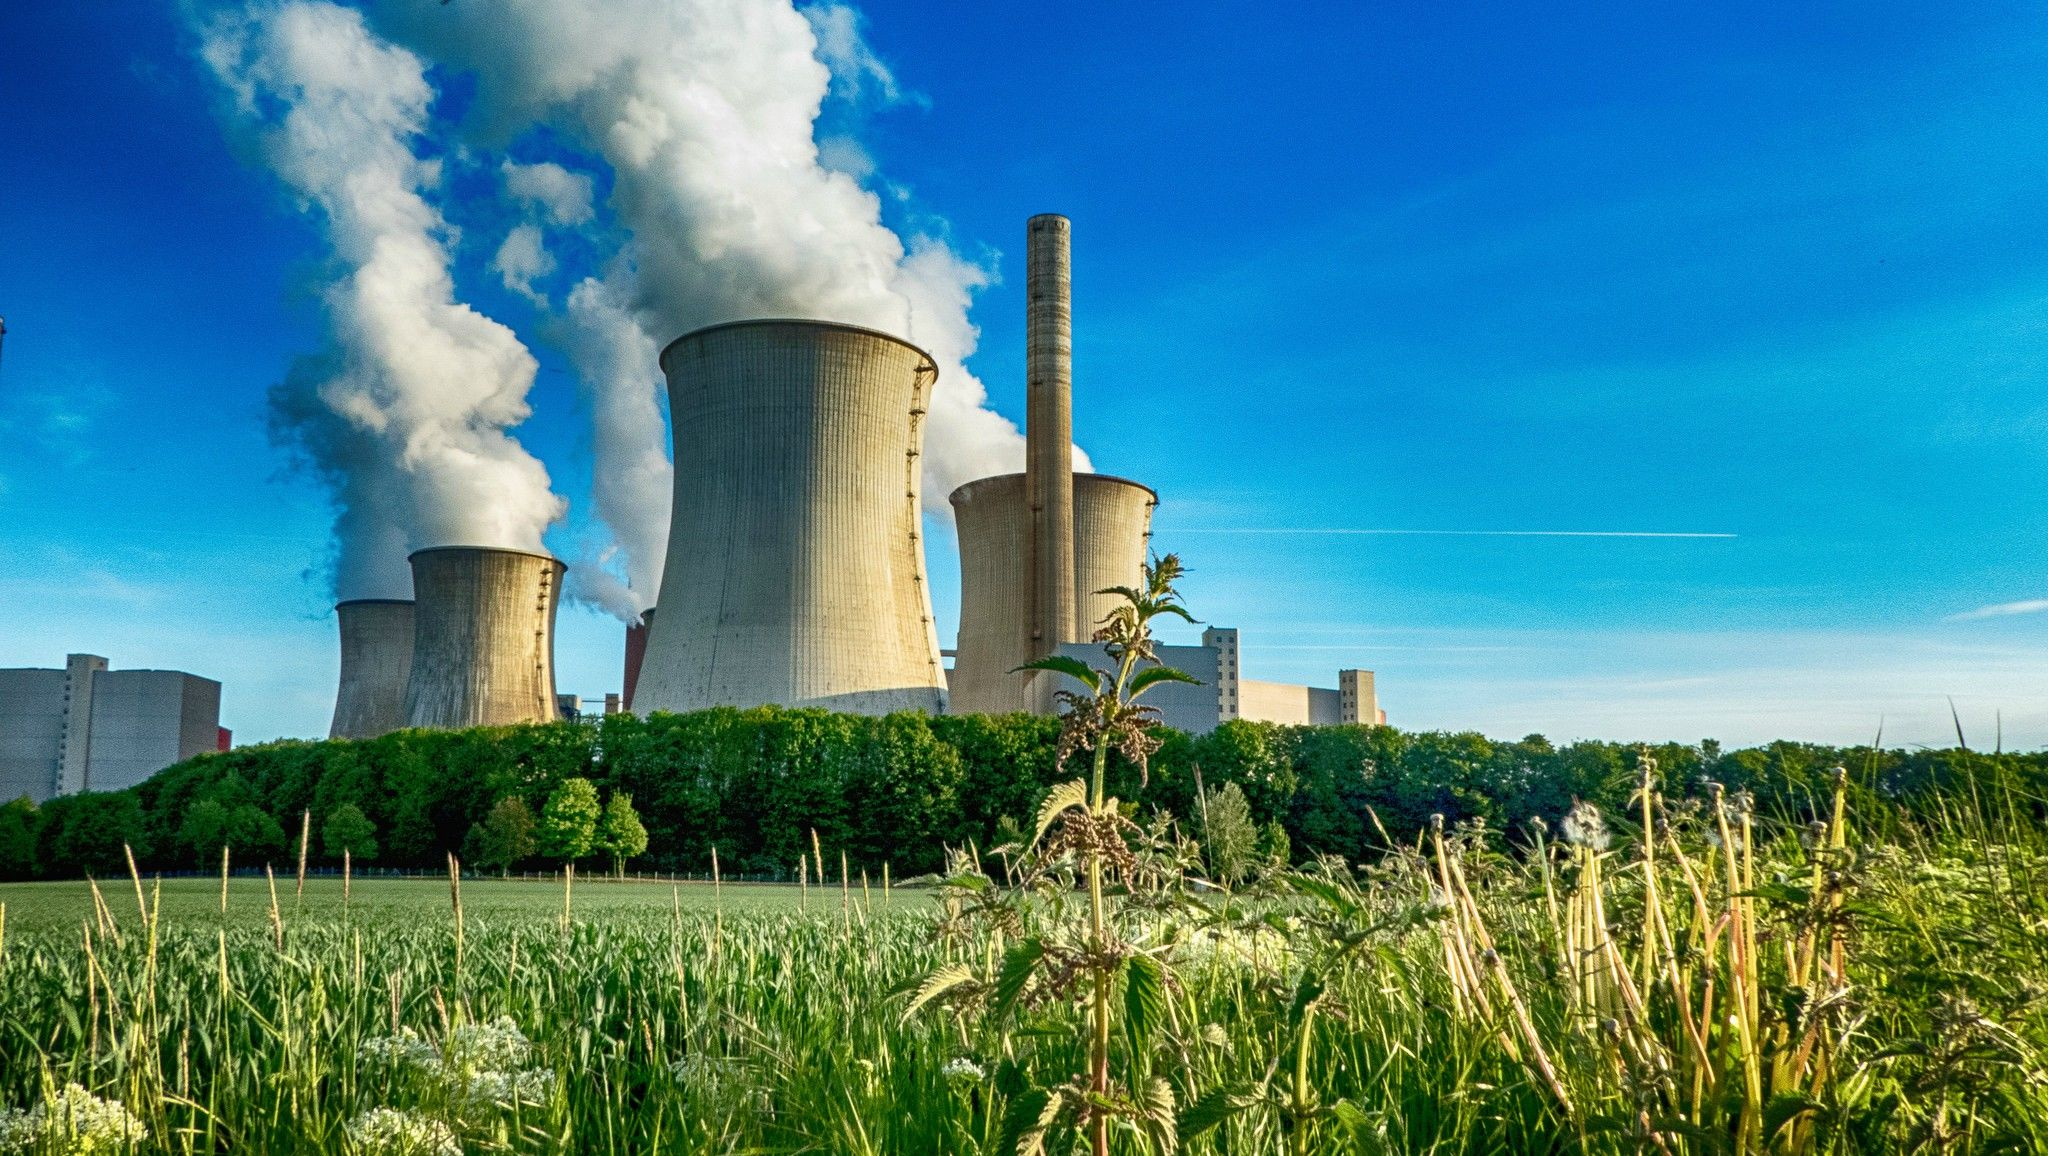 Coal pollution invades water air and